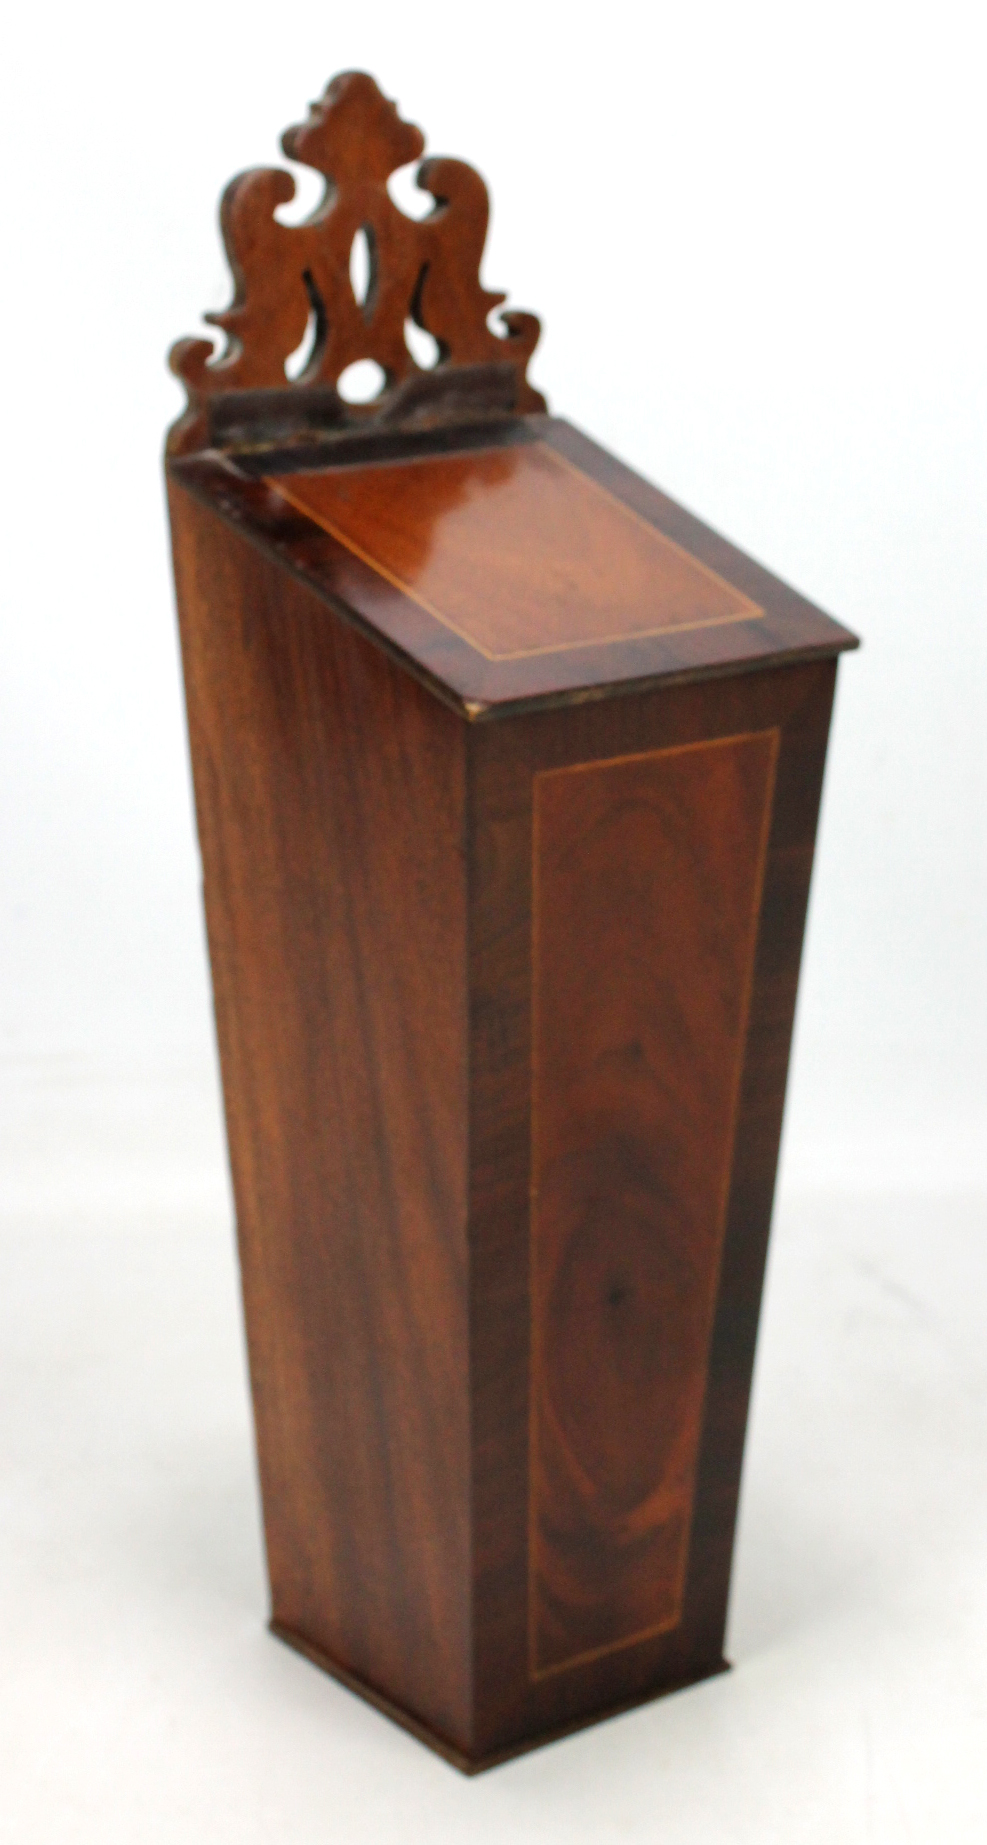 Lot 43 - A mahogany and inlaid candle box with hinged lid and carved back plate, height 42.5cm. Additional